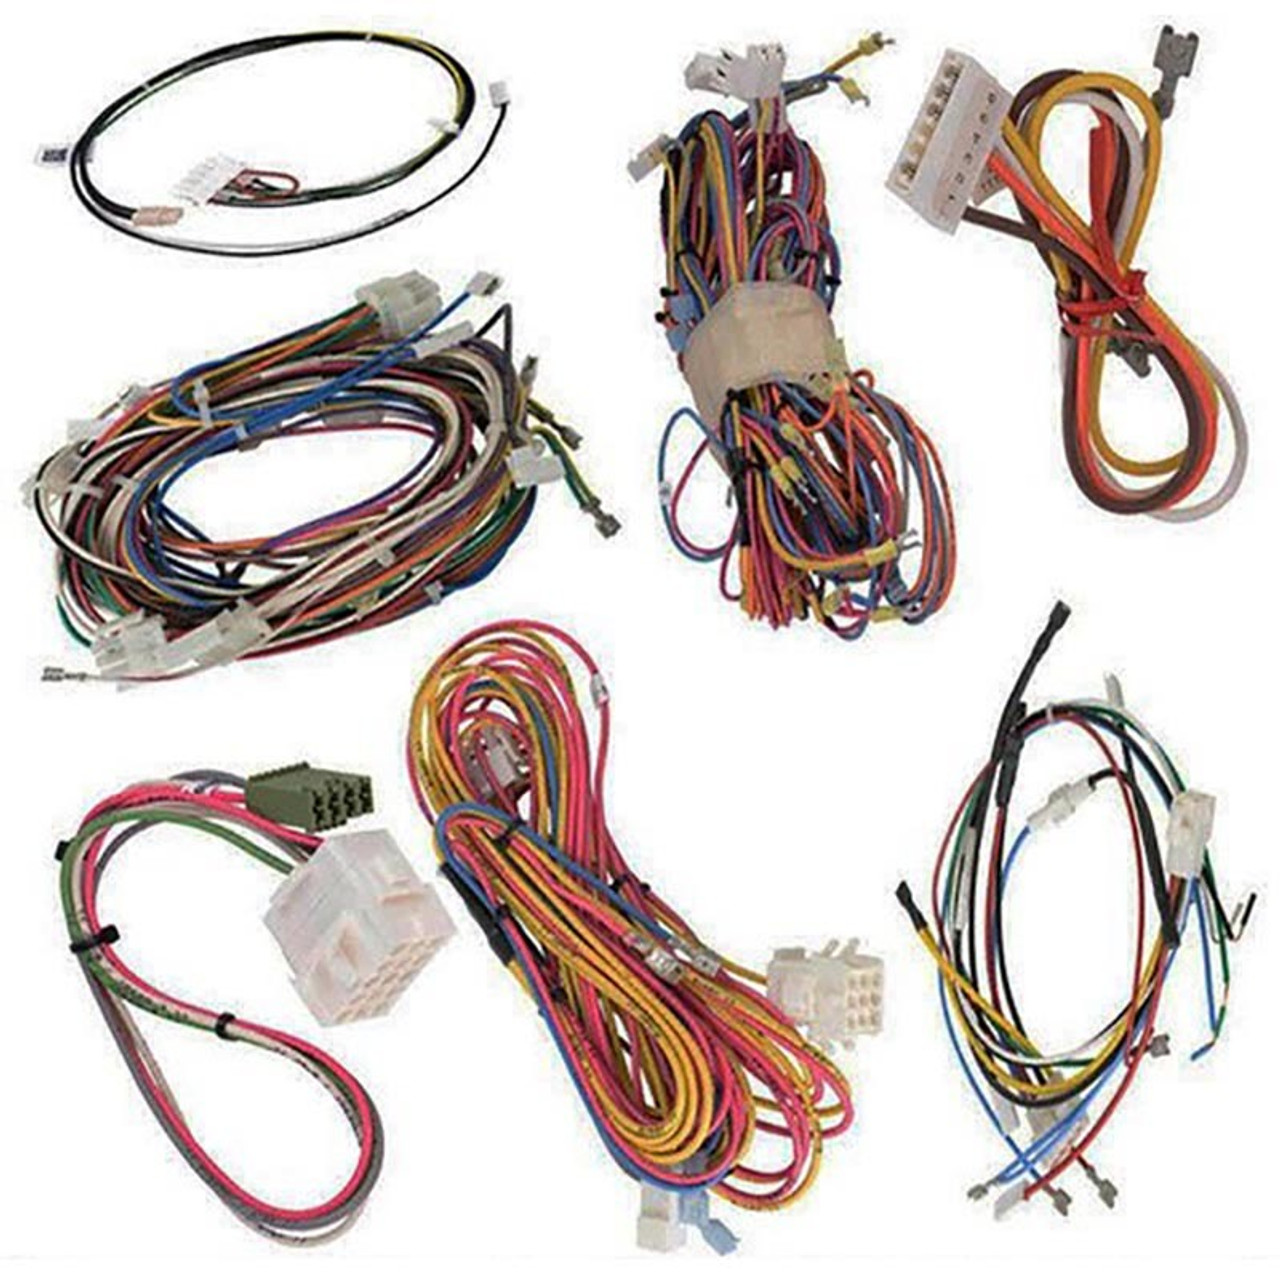 small resolution of wiring harness reviews wiring diagram home centech wiring harness reviews